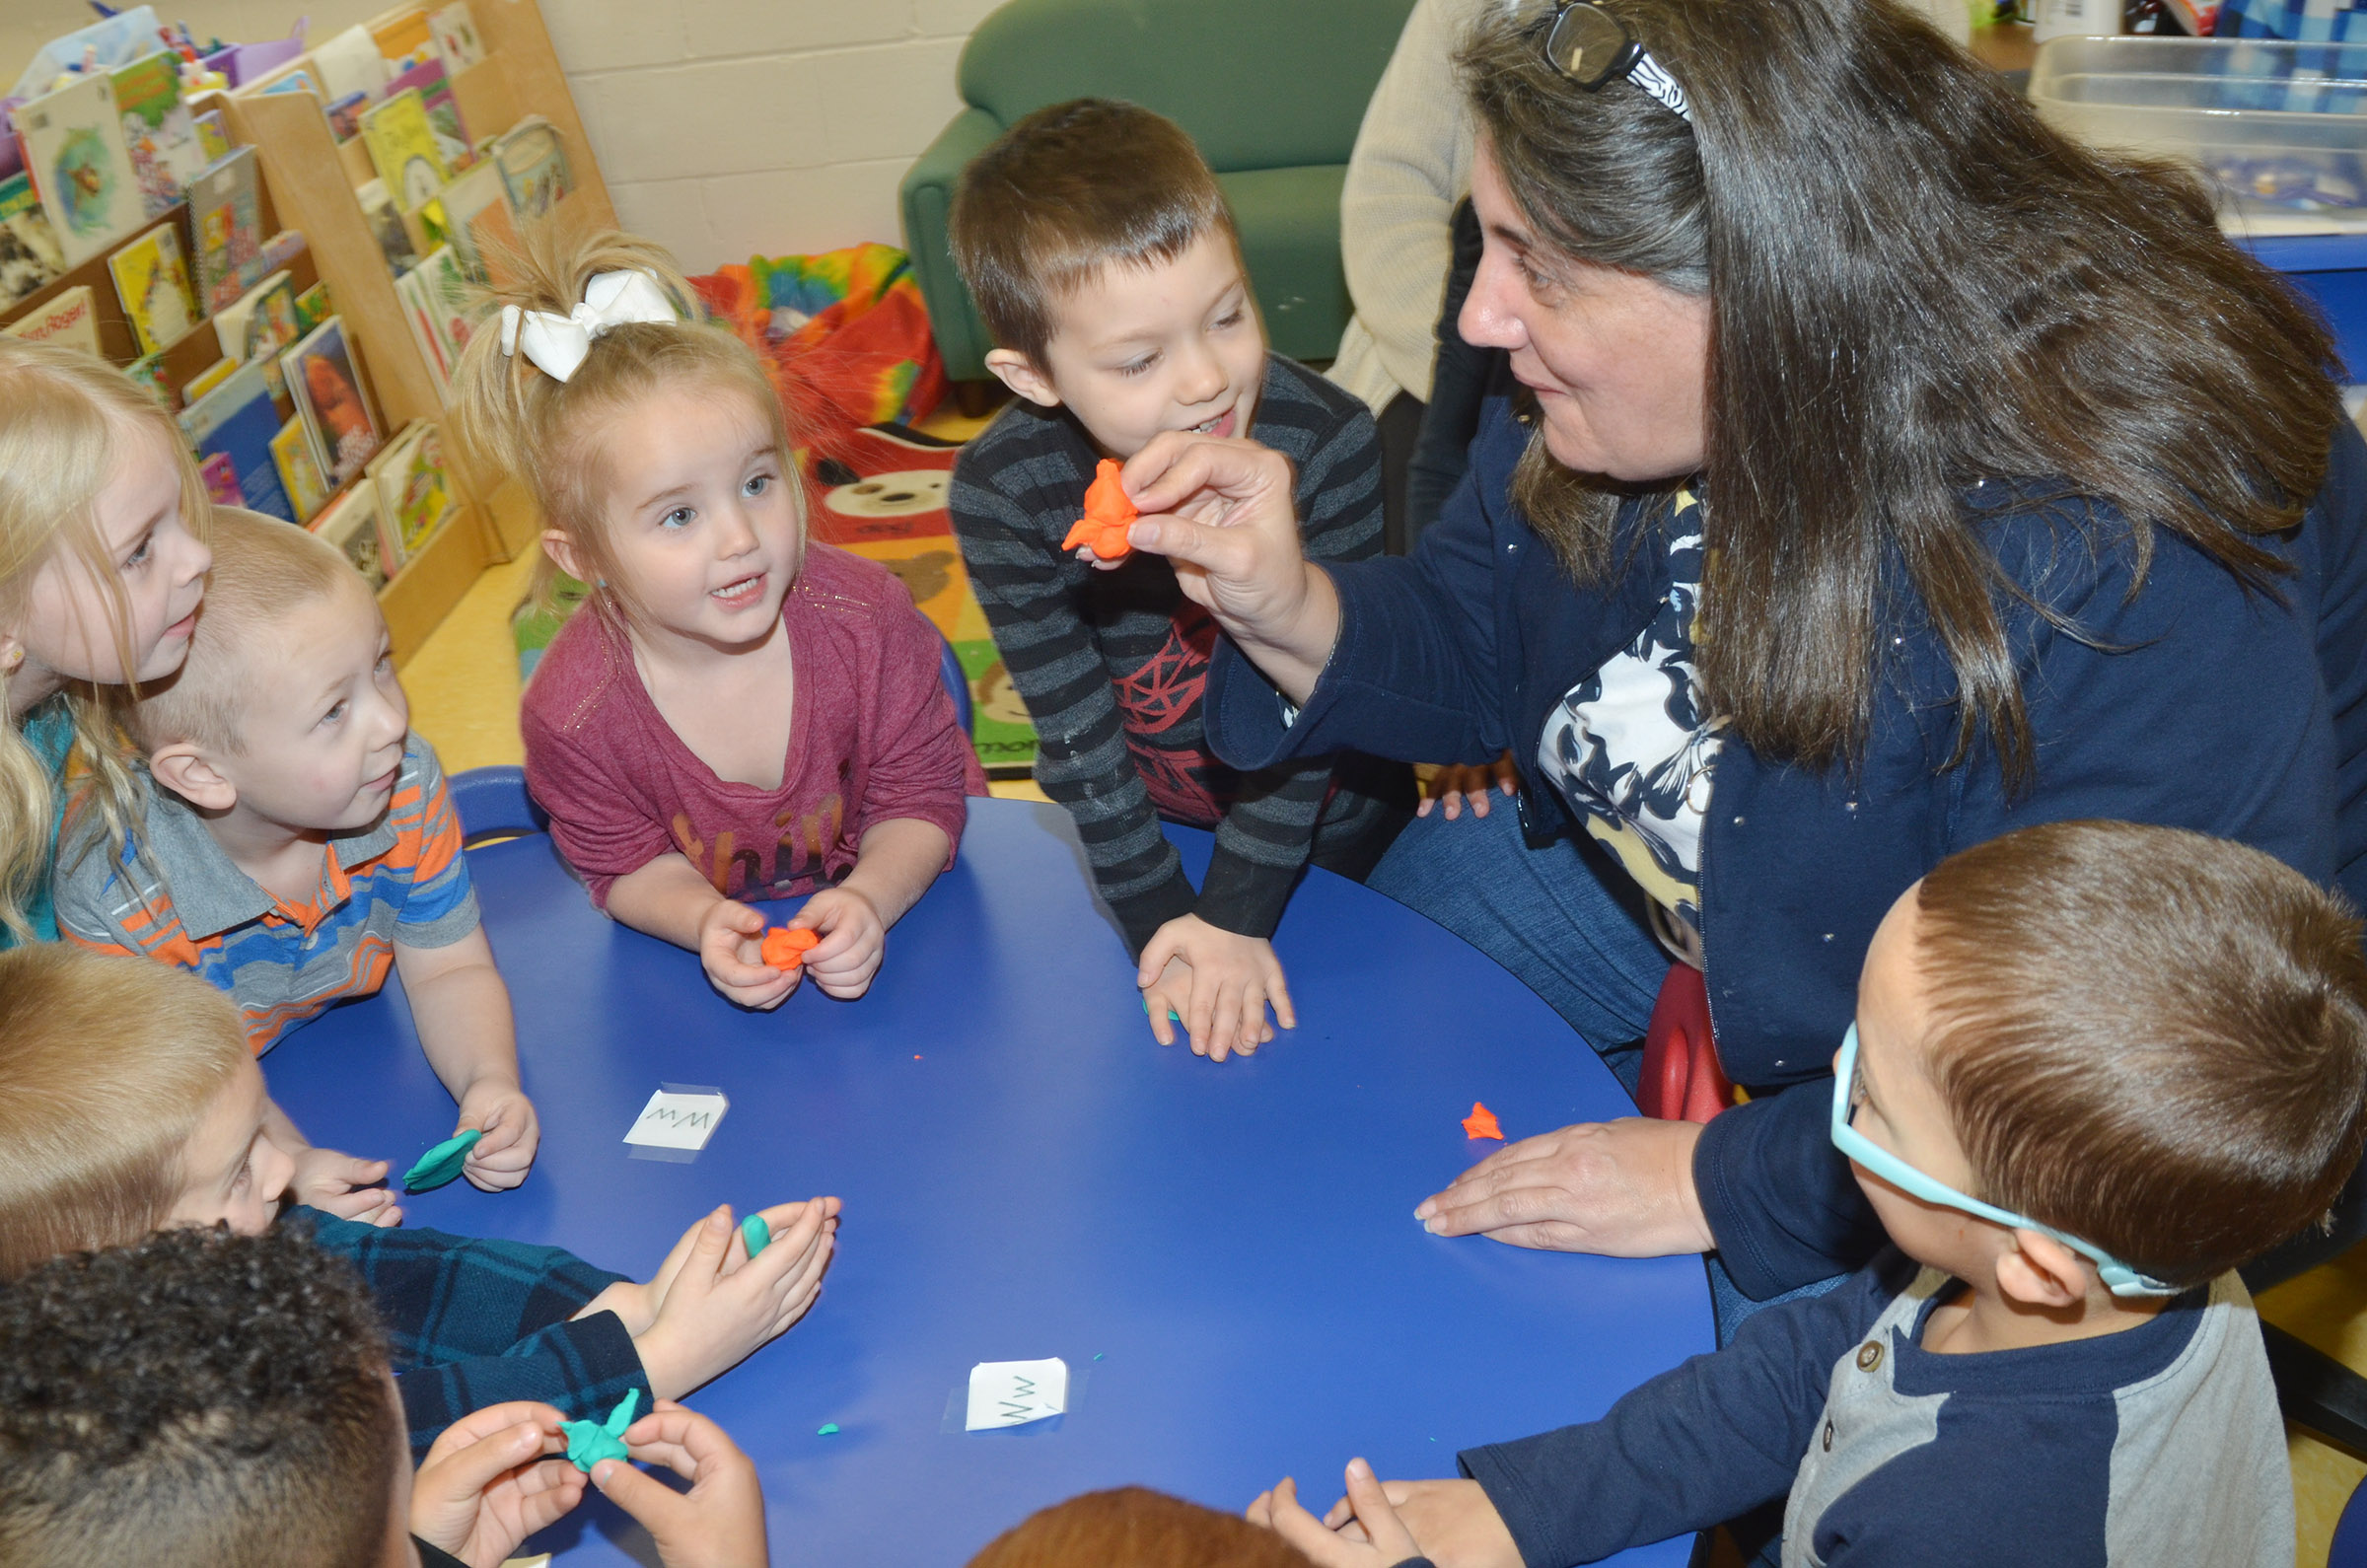 CES preschool teacher Sherry Cowherd makes a witch out of Play-Doh for her students. Clockwise from bottom left are Kingston Cowherd, Jacob Parrish, Alinna Bray, Cameron Dean, Trinity Dye, Levi Ritchie and Chanler Mann.